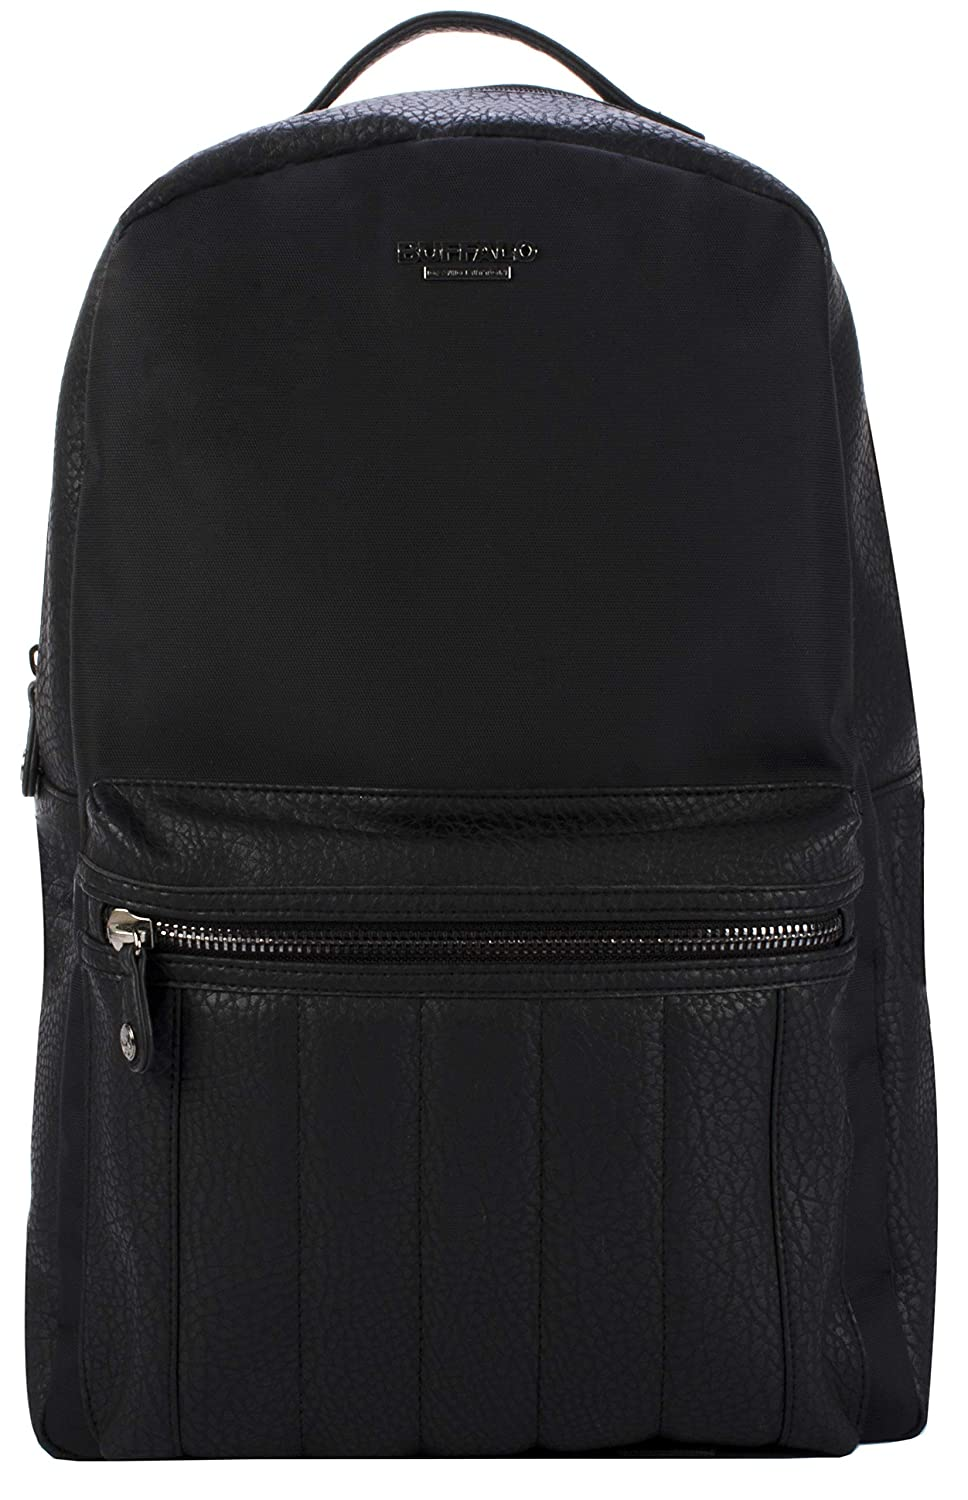 Buffalo David Bitton Stockholm Backpack Black BUF110602US